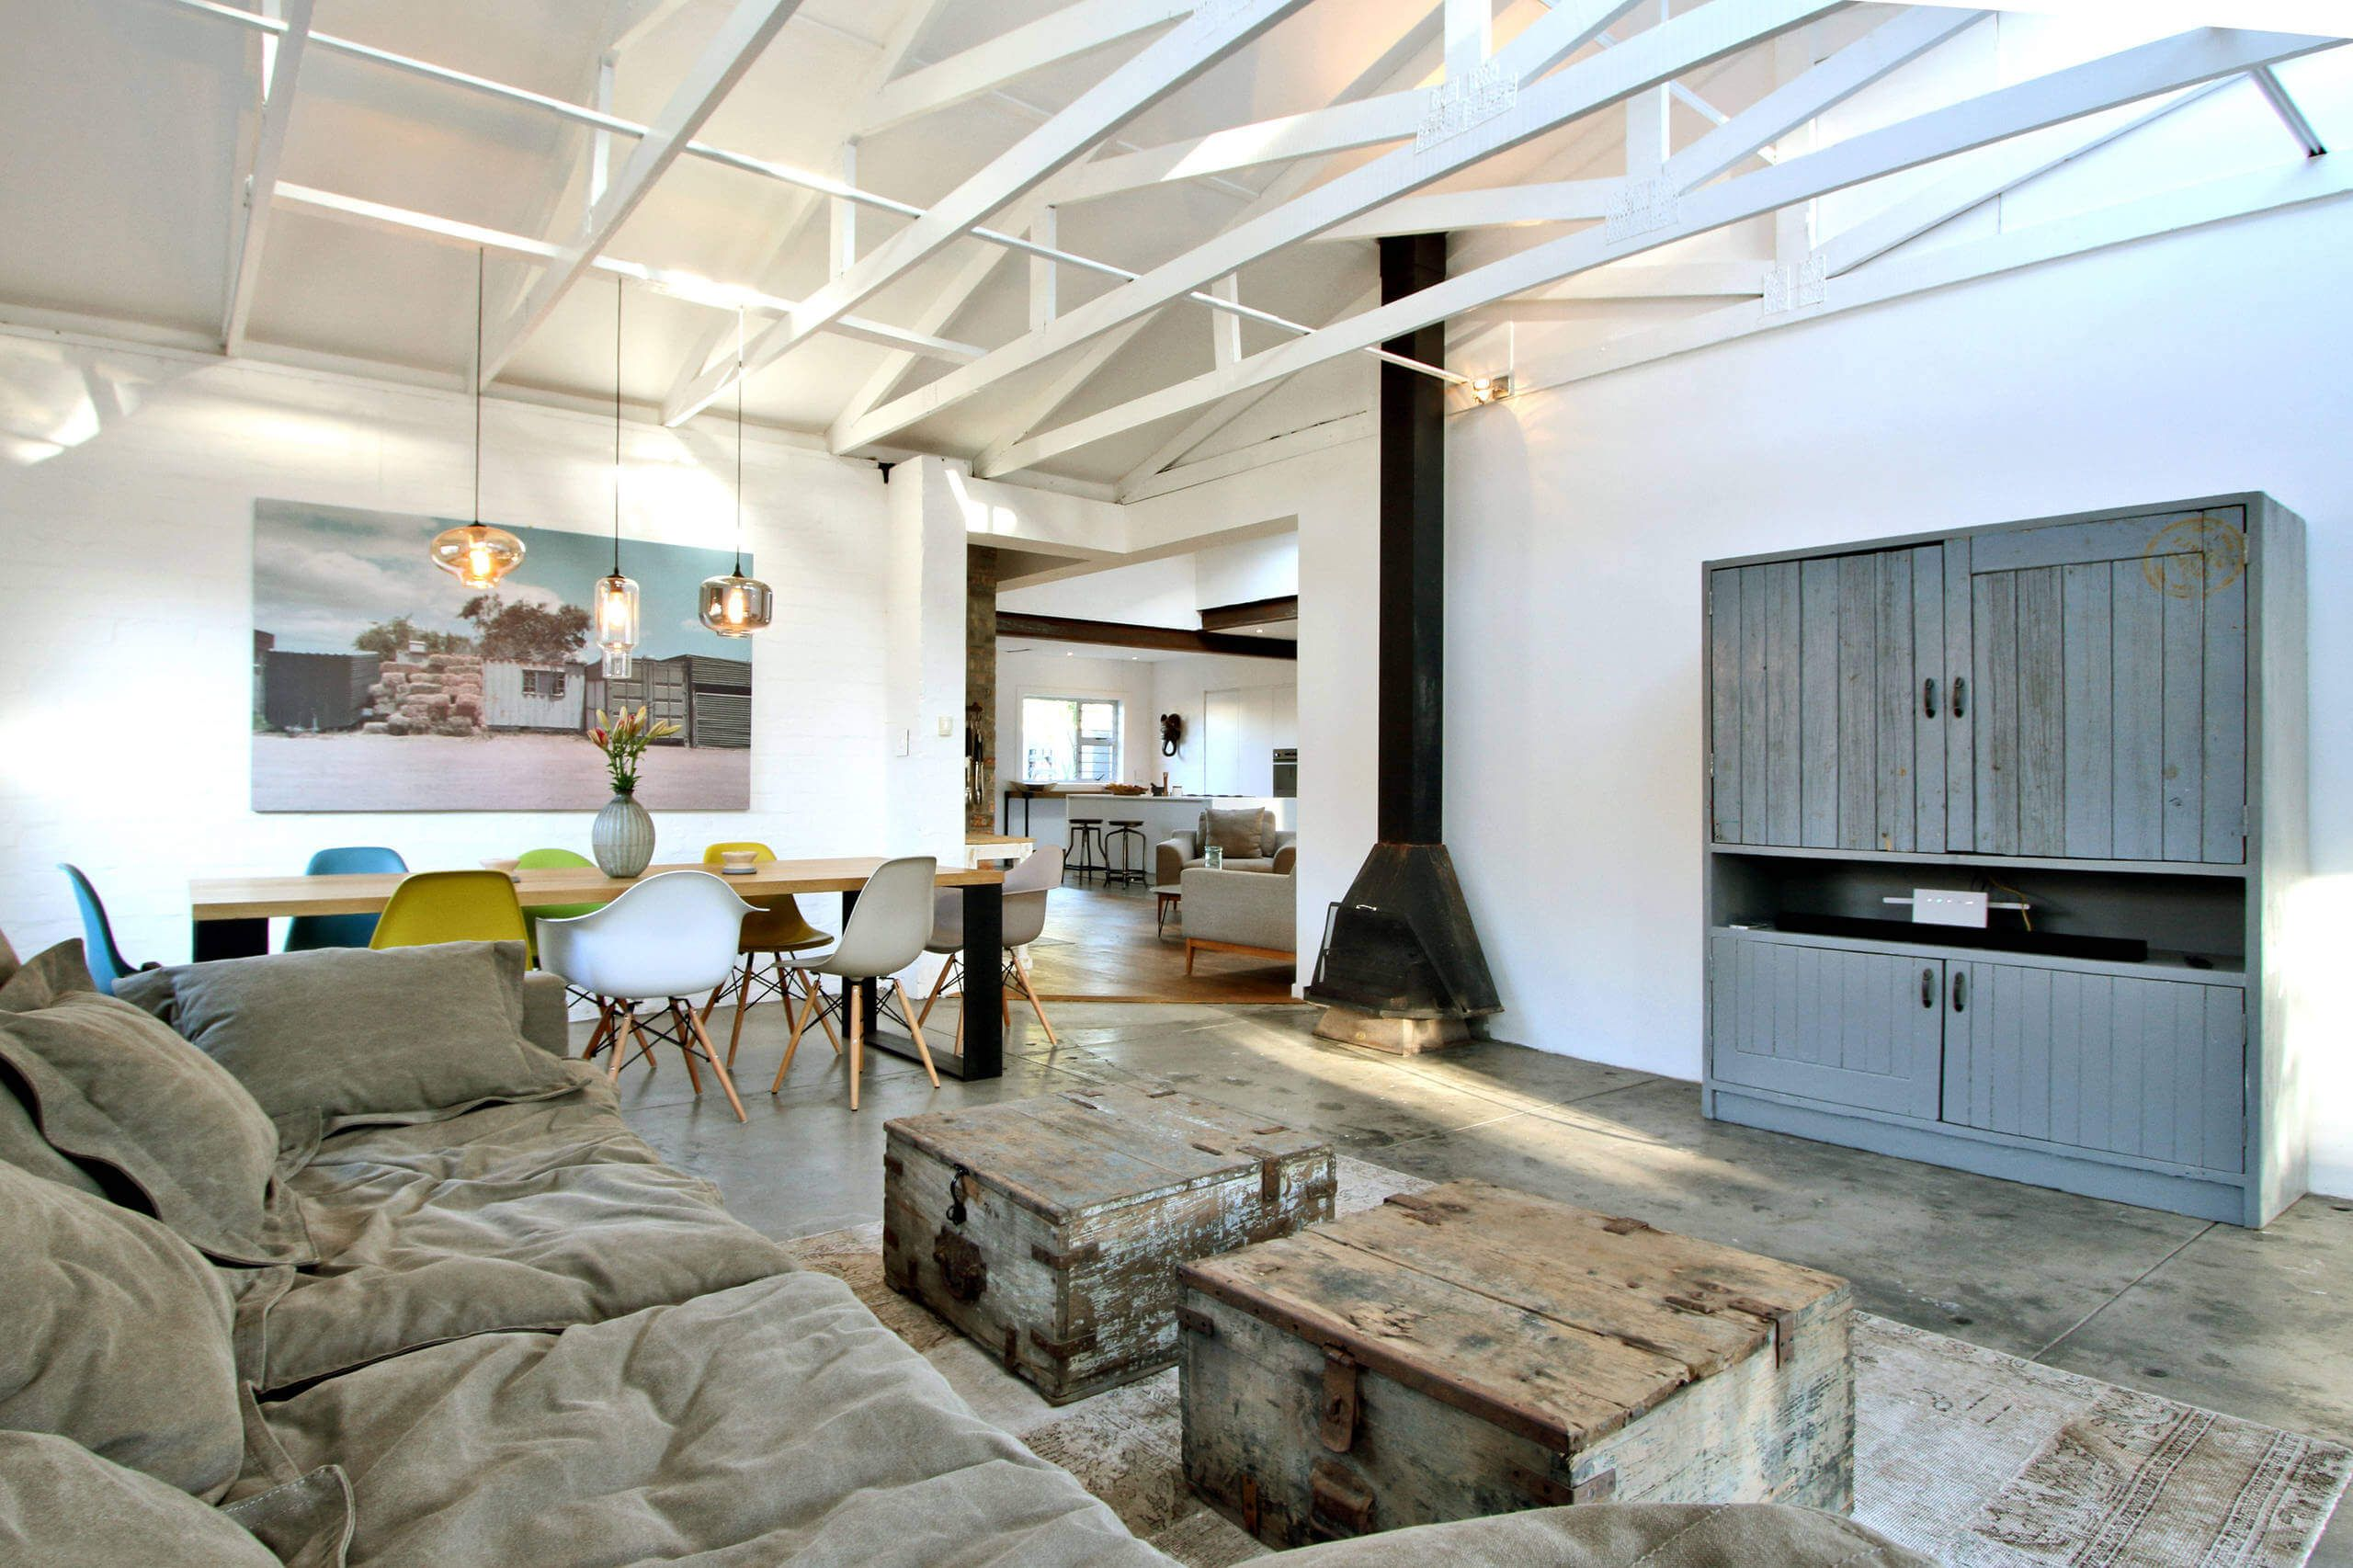 House in Cape Town by Studio Swen Burgheim | architecture | Pinterest